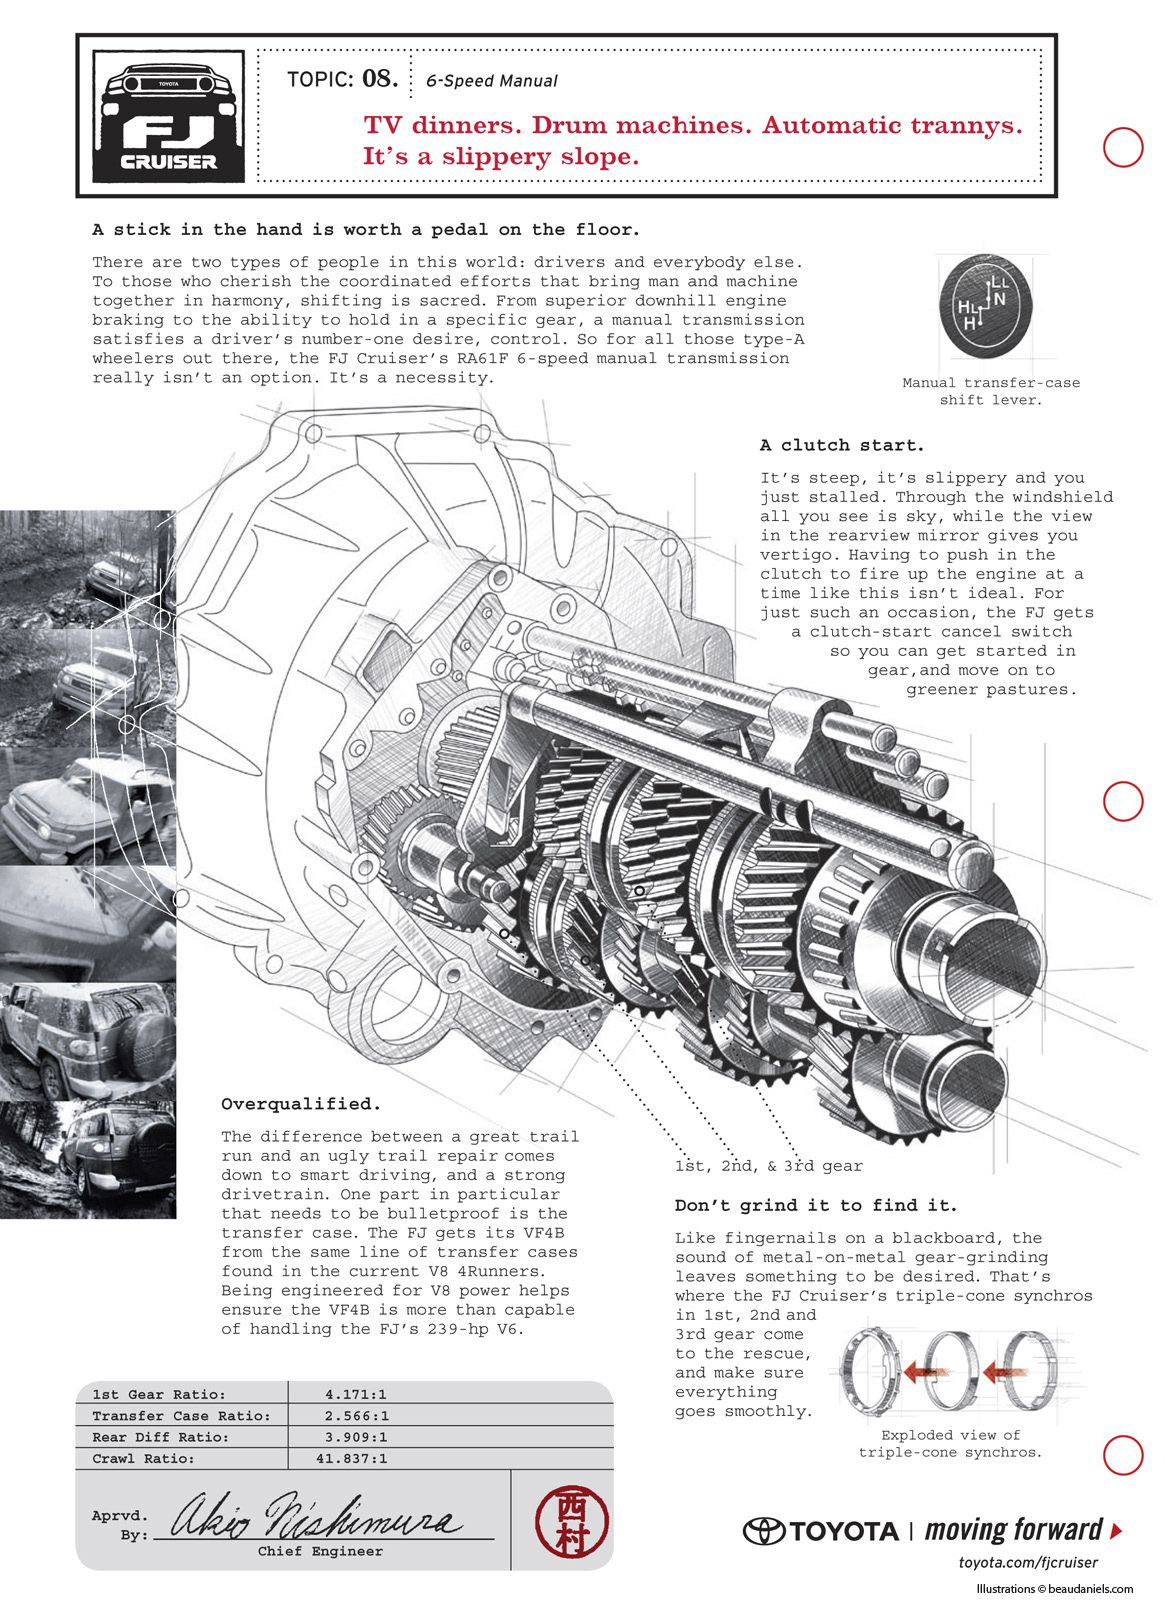 Fj Cruiser Ads Cutaway Style Technical Illustration Of A